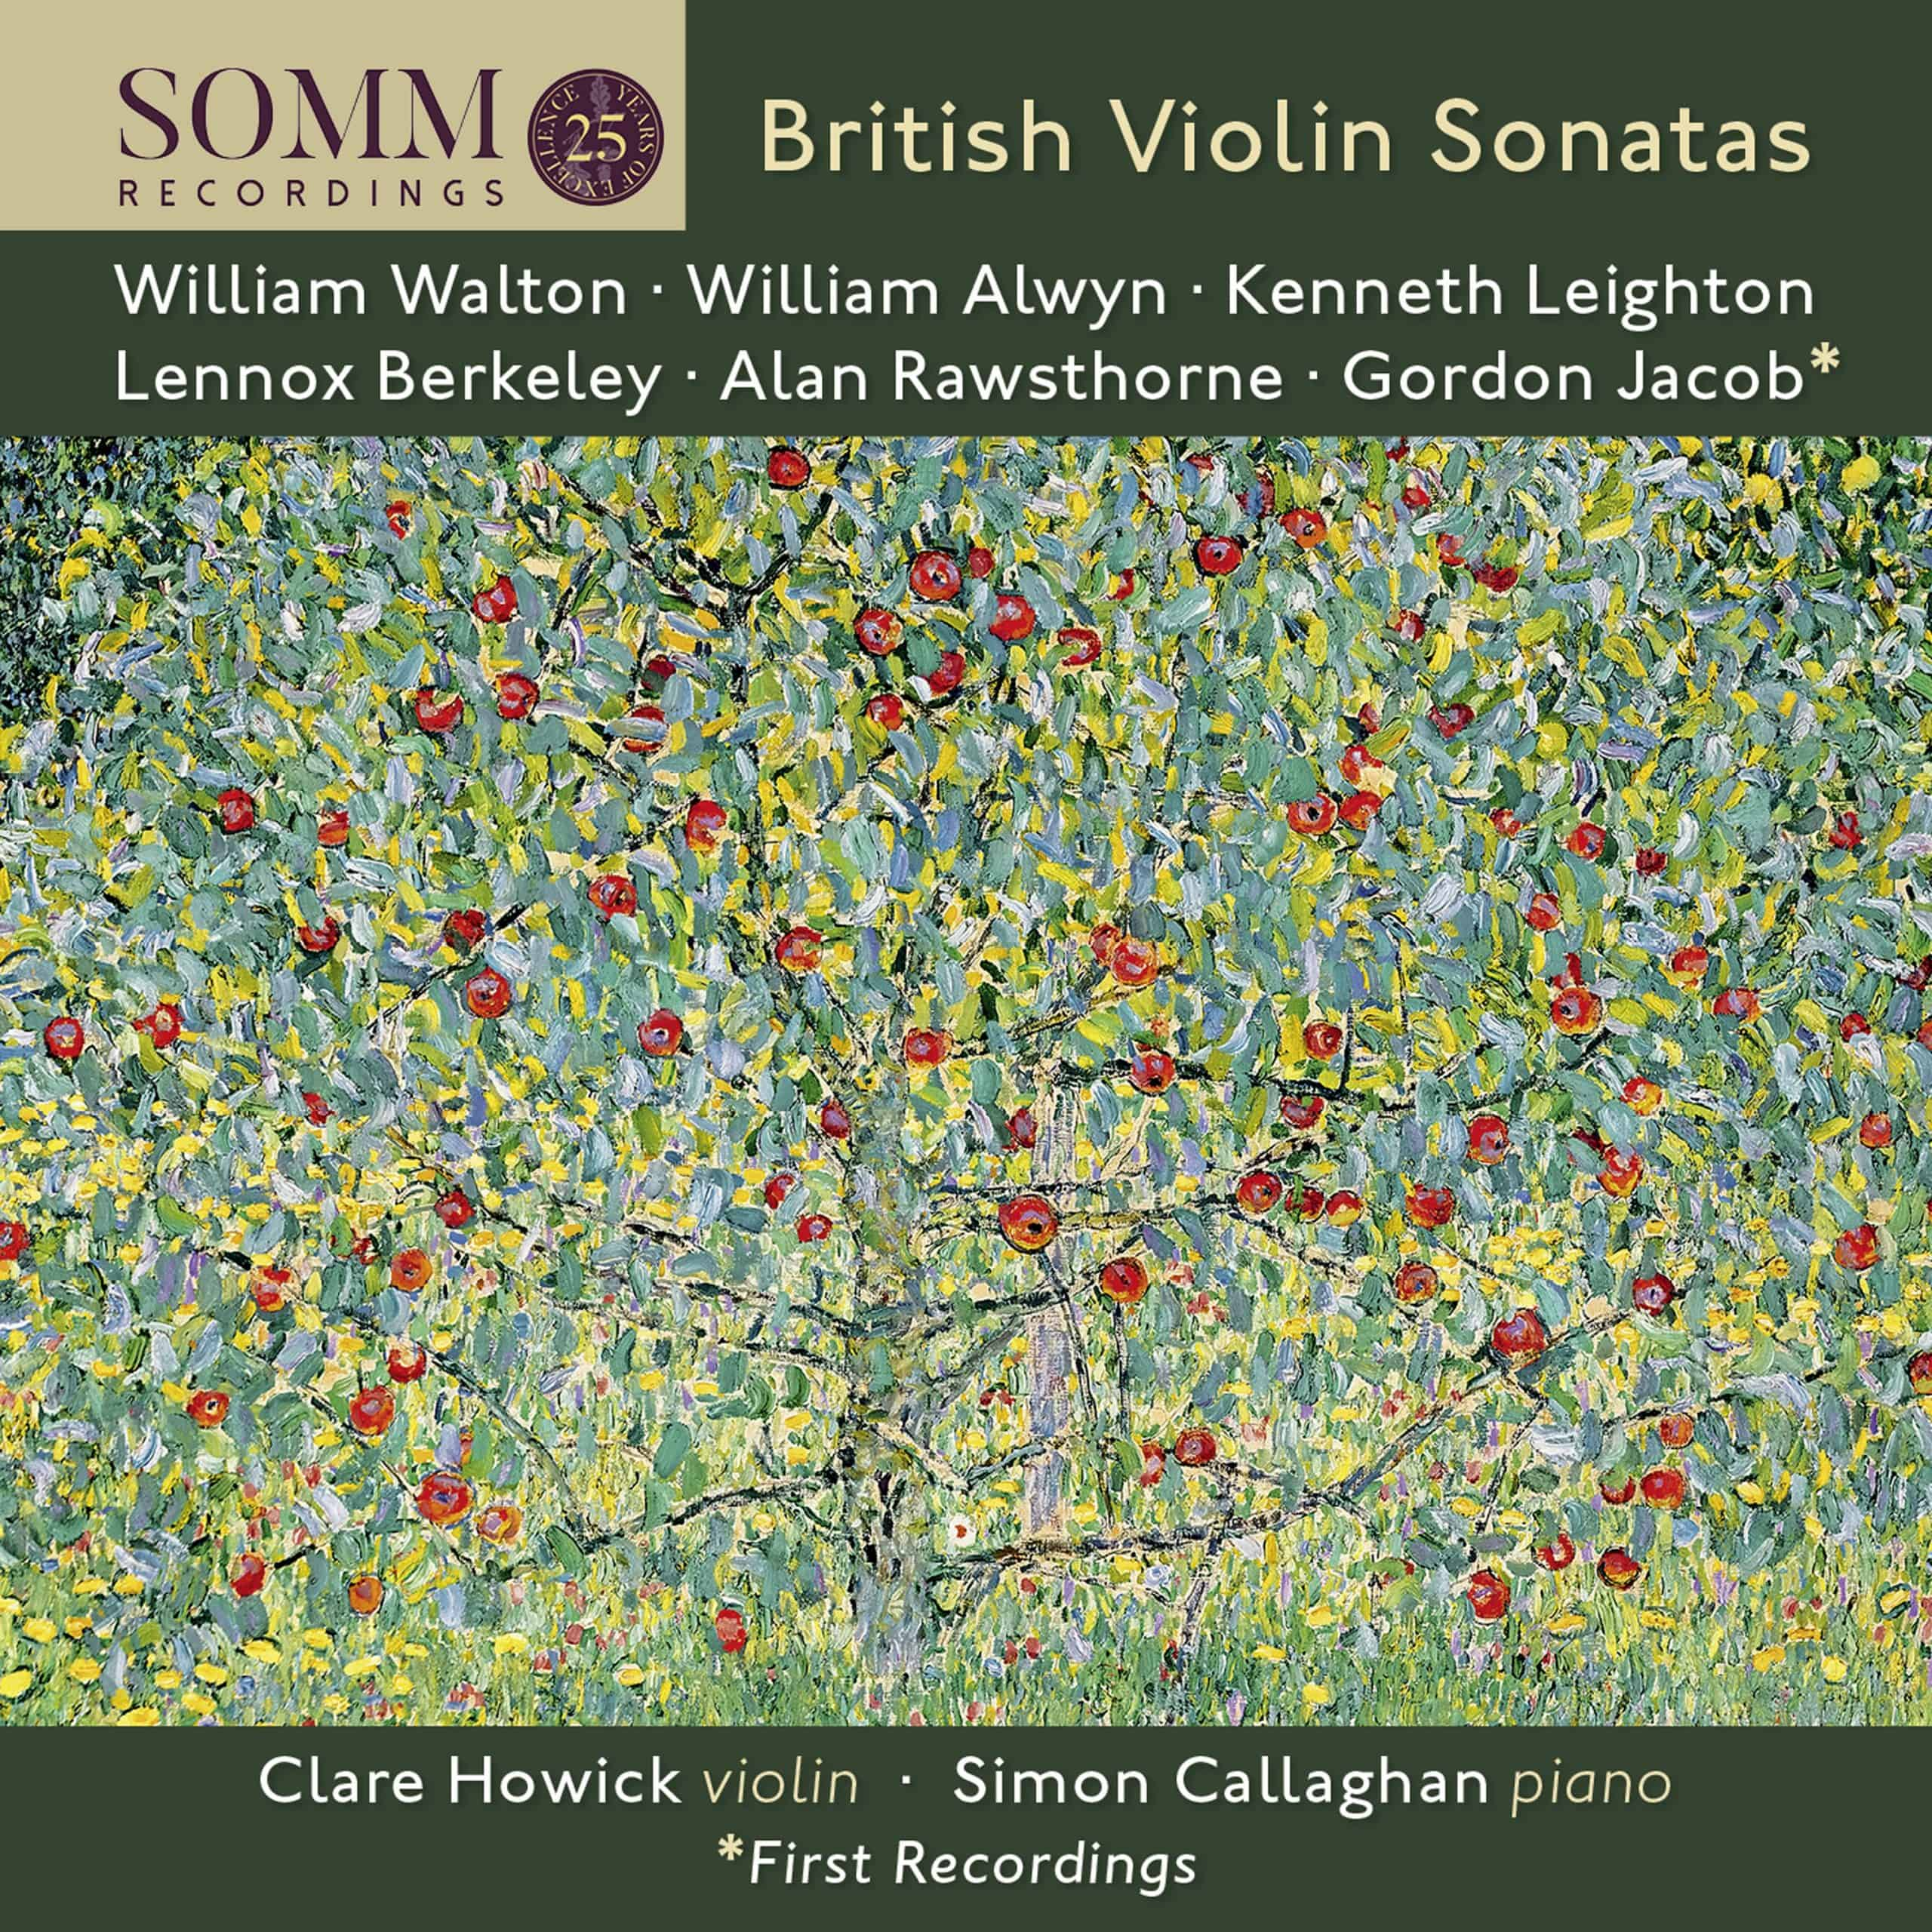 British Violin Sonatas